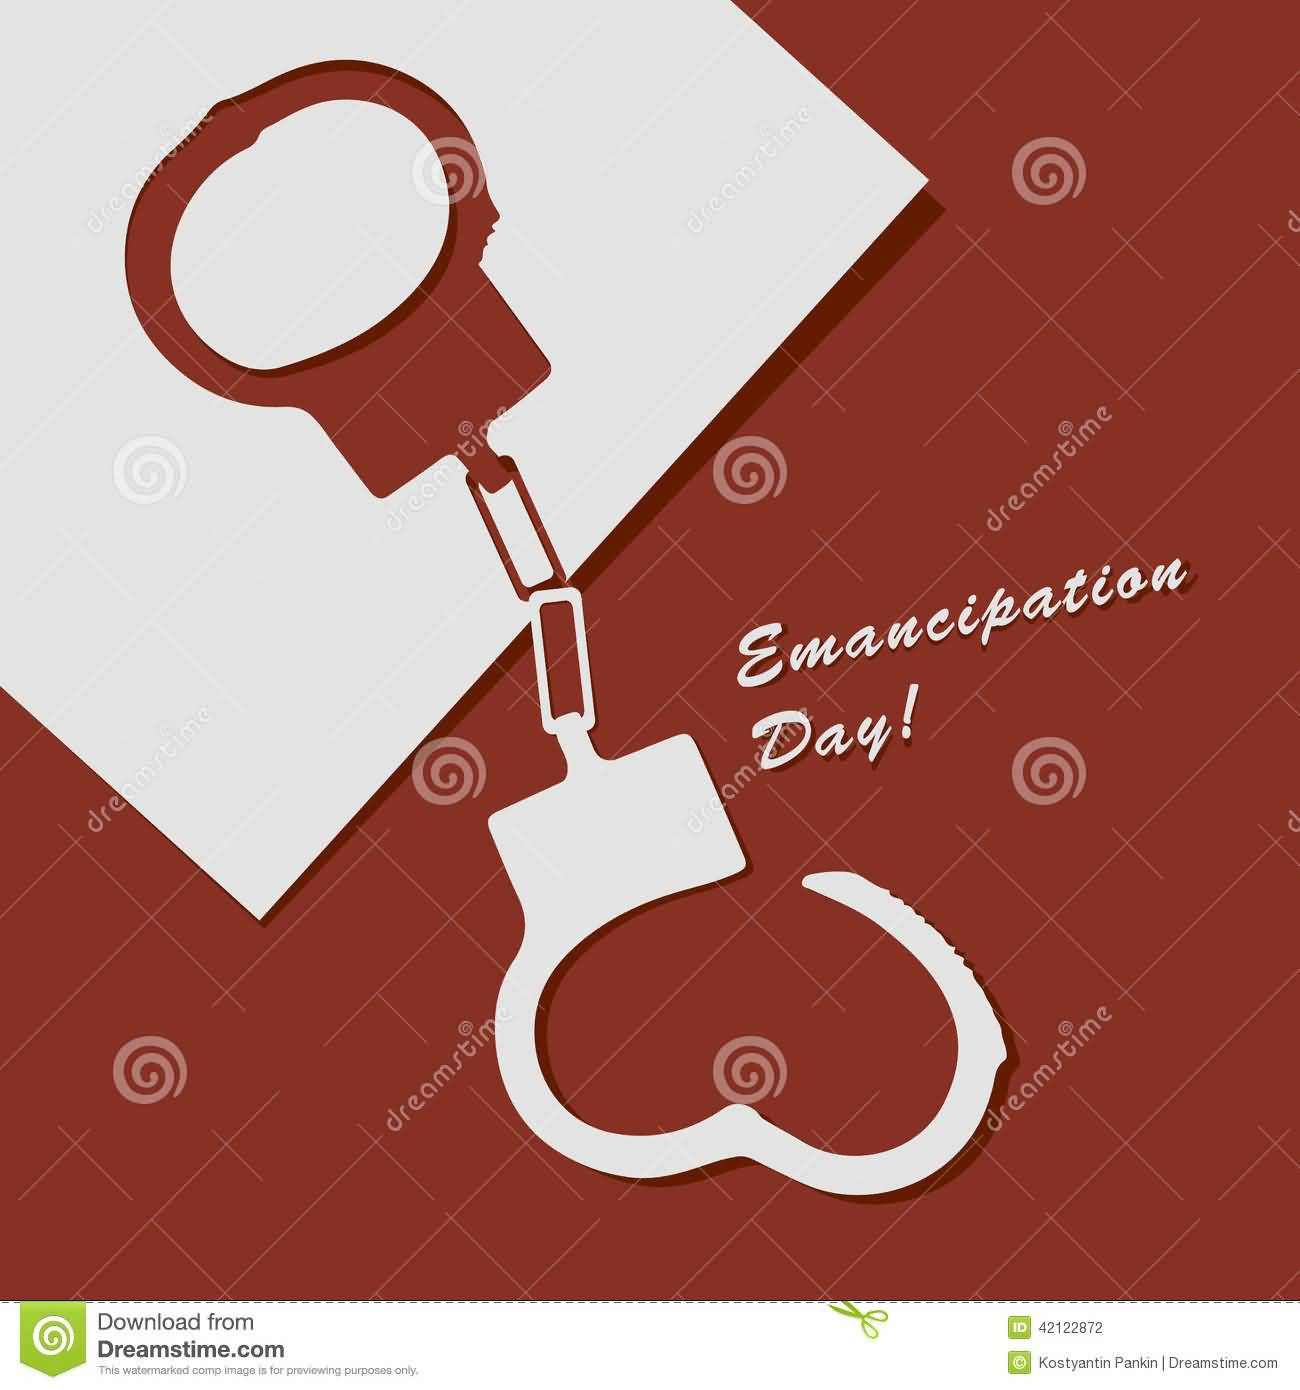 Emancipation Day Handcuffs Illustration